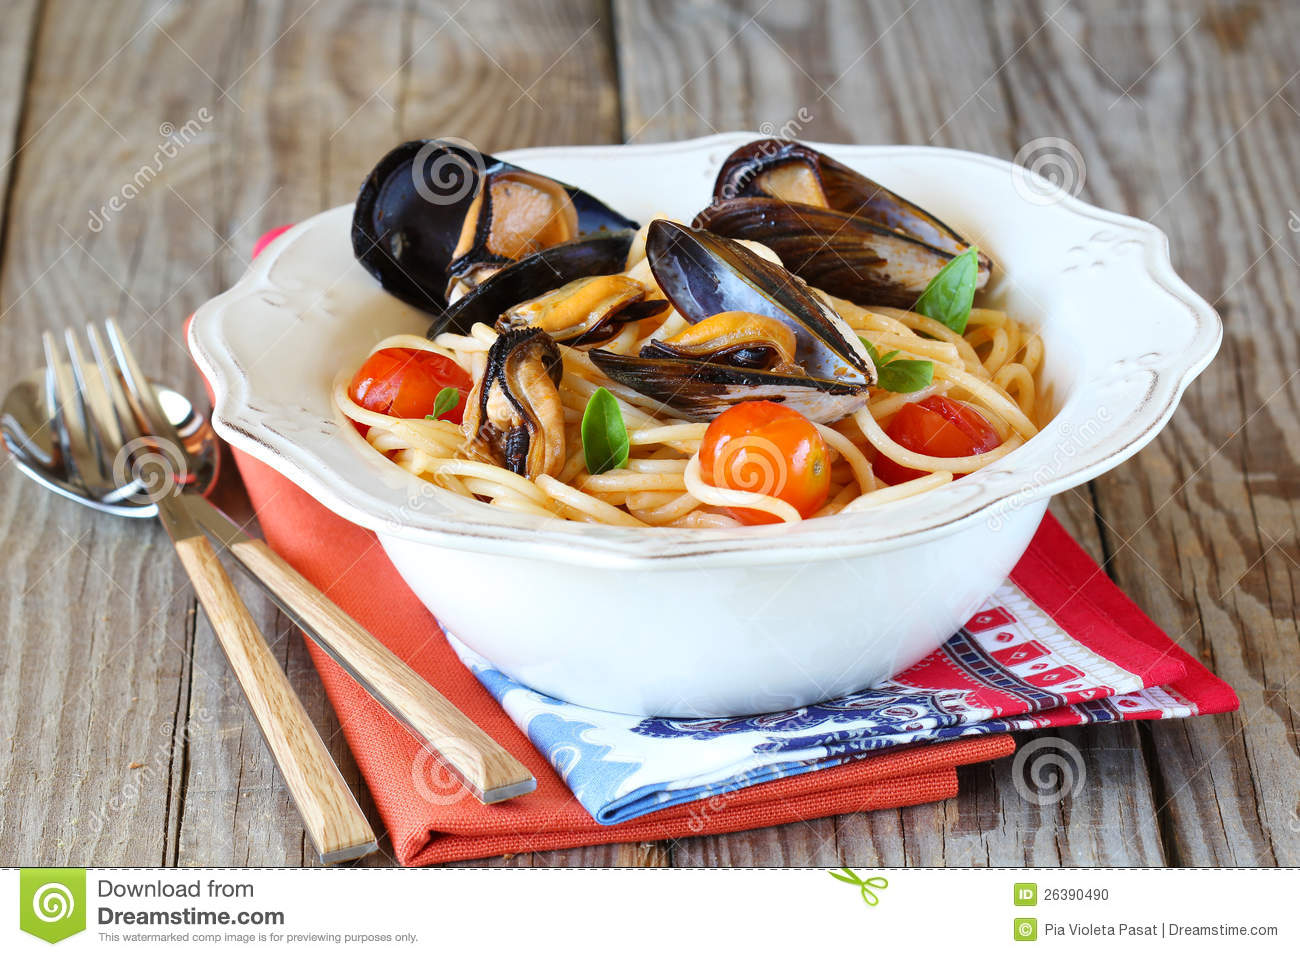 Spaghetti with mussels,tomato and basil.